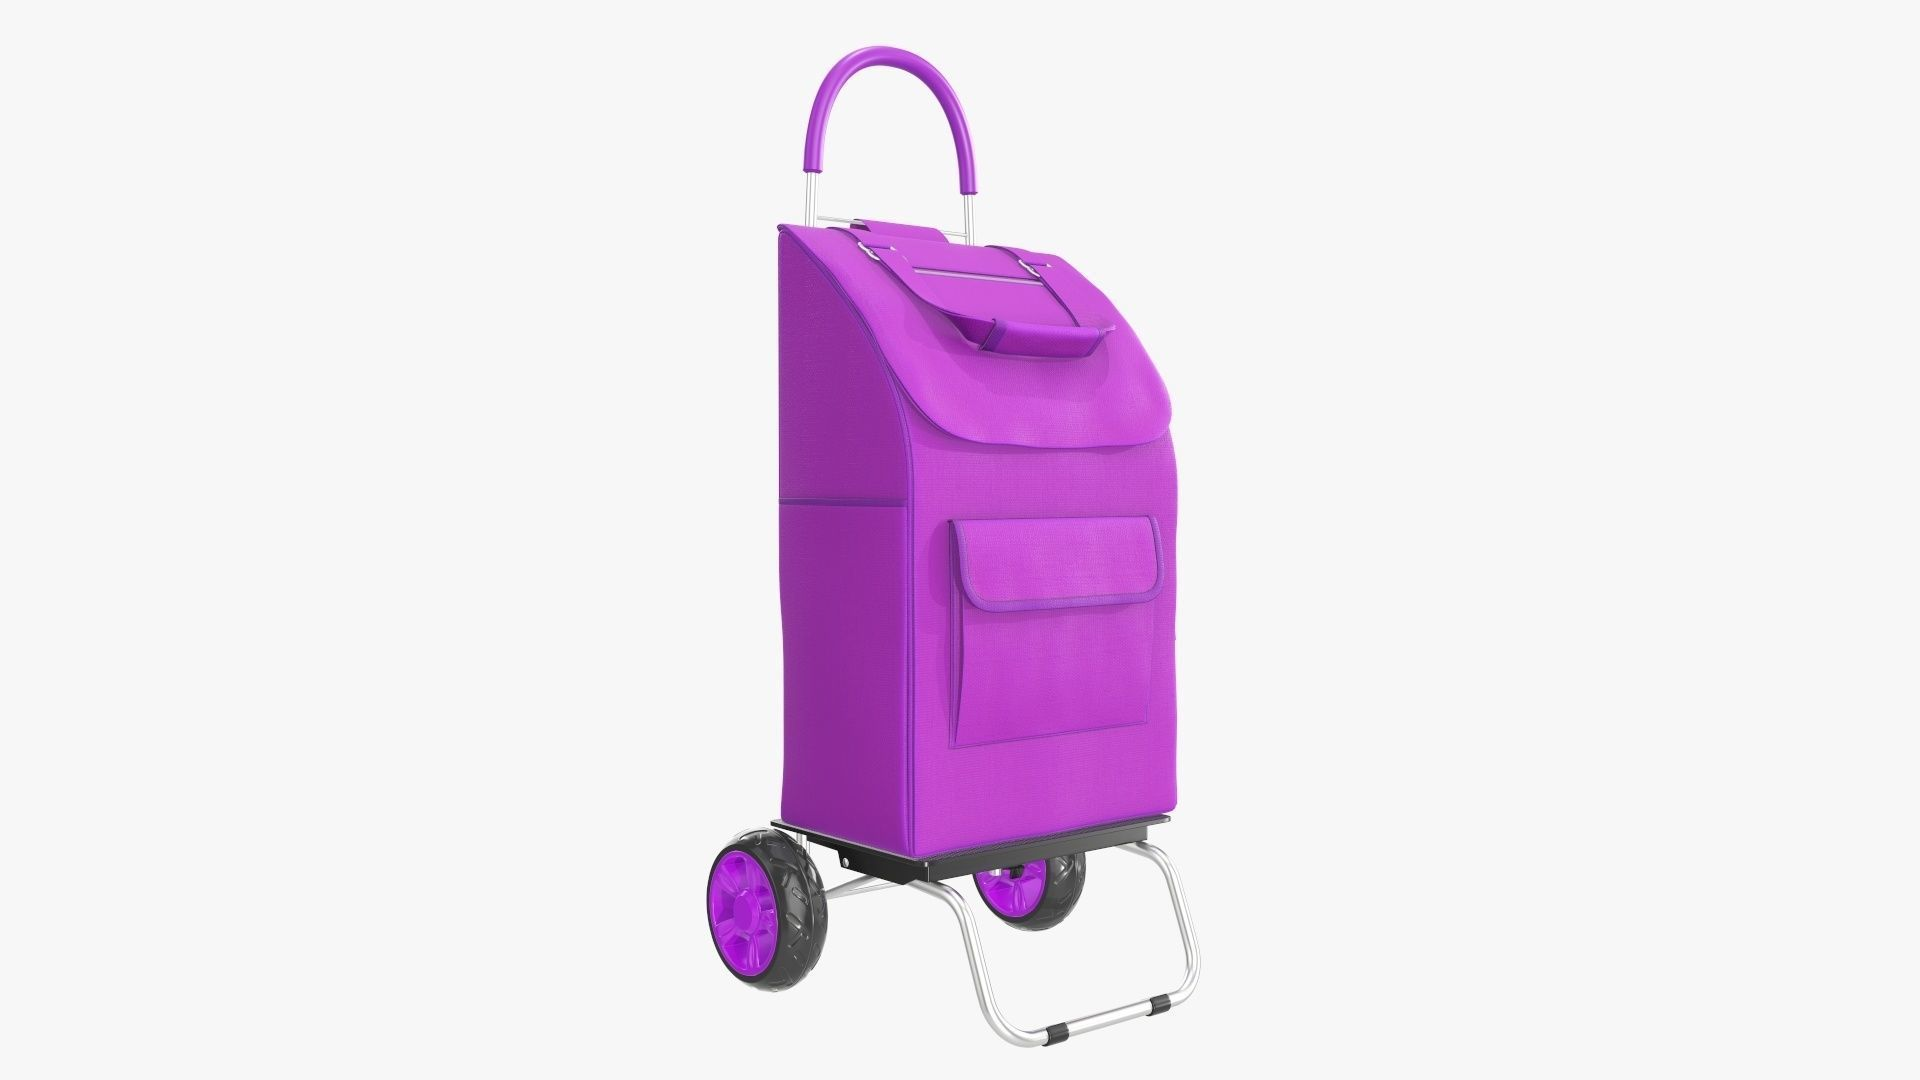 Foldable utility cart with bag